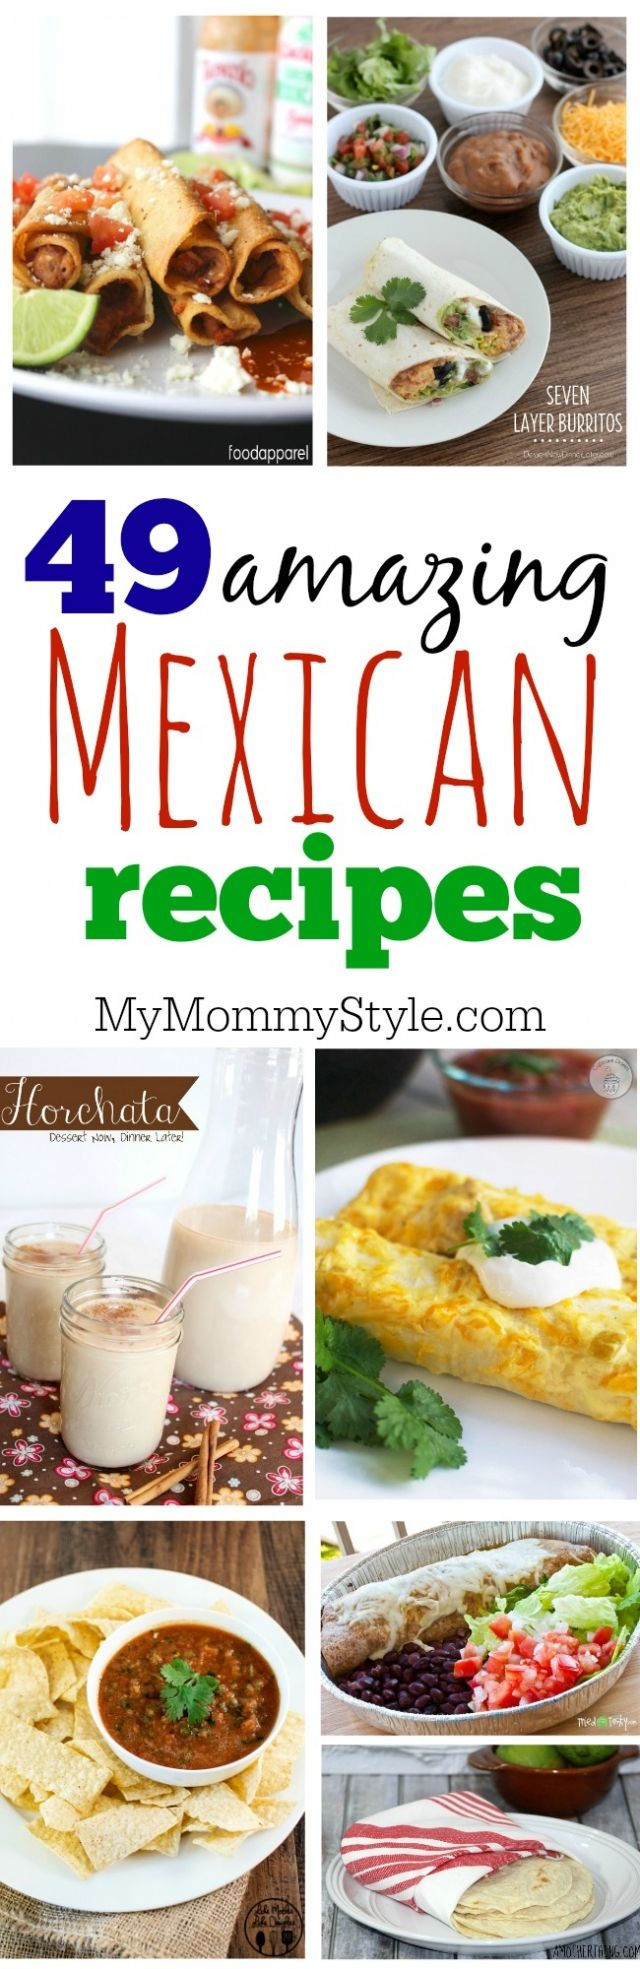 The best of the best Mexican Recipes perfect for Cinco de Mayo or anytime of the year! This round up has salsa recipes, burritos, tacos, enchiladas, horchata, Mexican rice, churros and more!